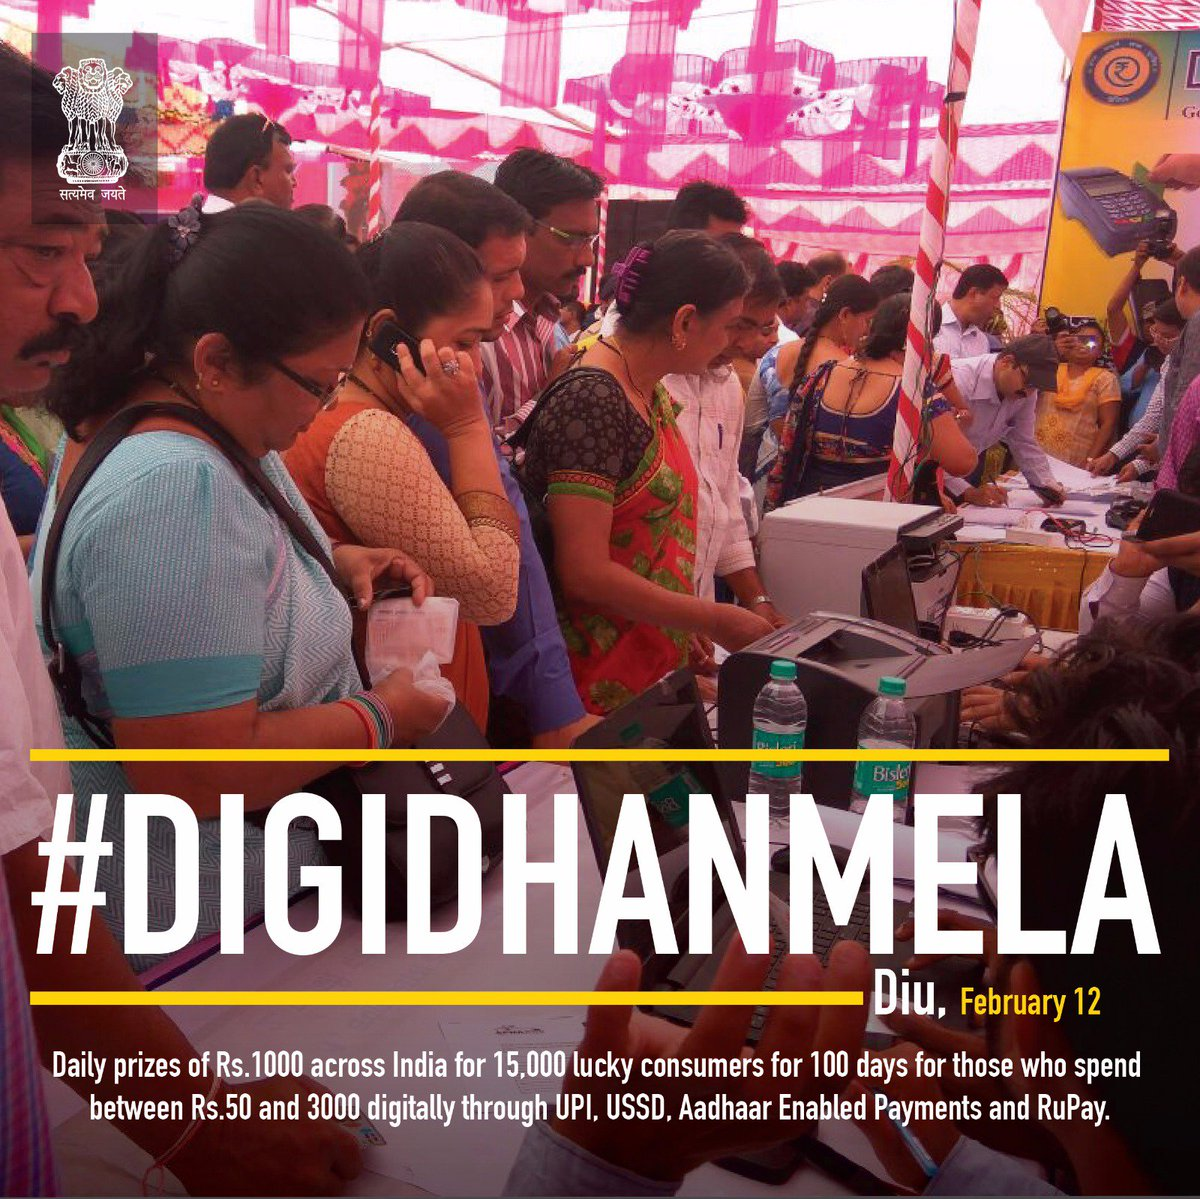 People try different modes of #digitalpayments like #UPI, #AEPS, #BHIM etc to figure out the most suitable one. #digidhandiu<br>http://pic.twitter.com/h4EUM7iZfQ